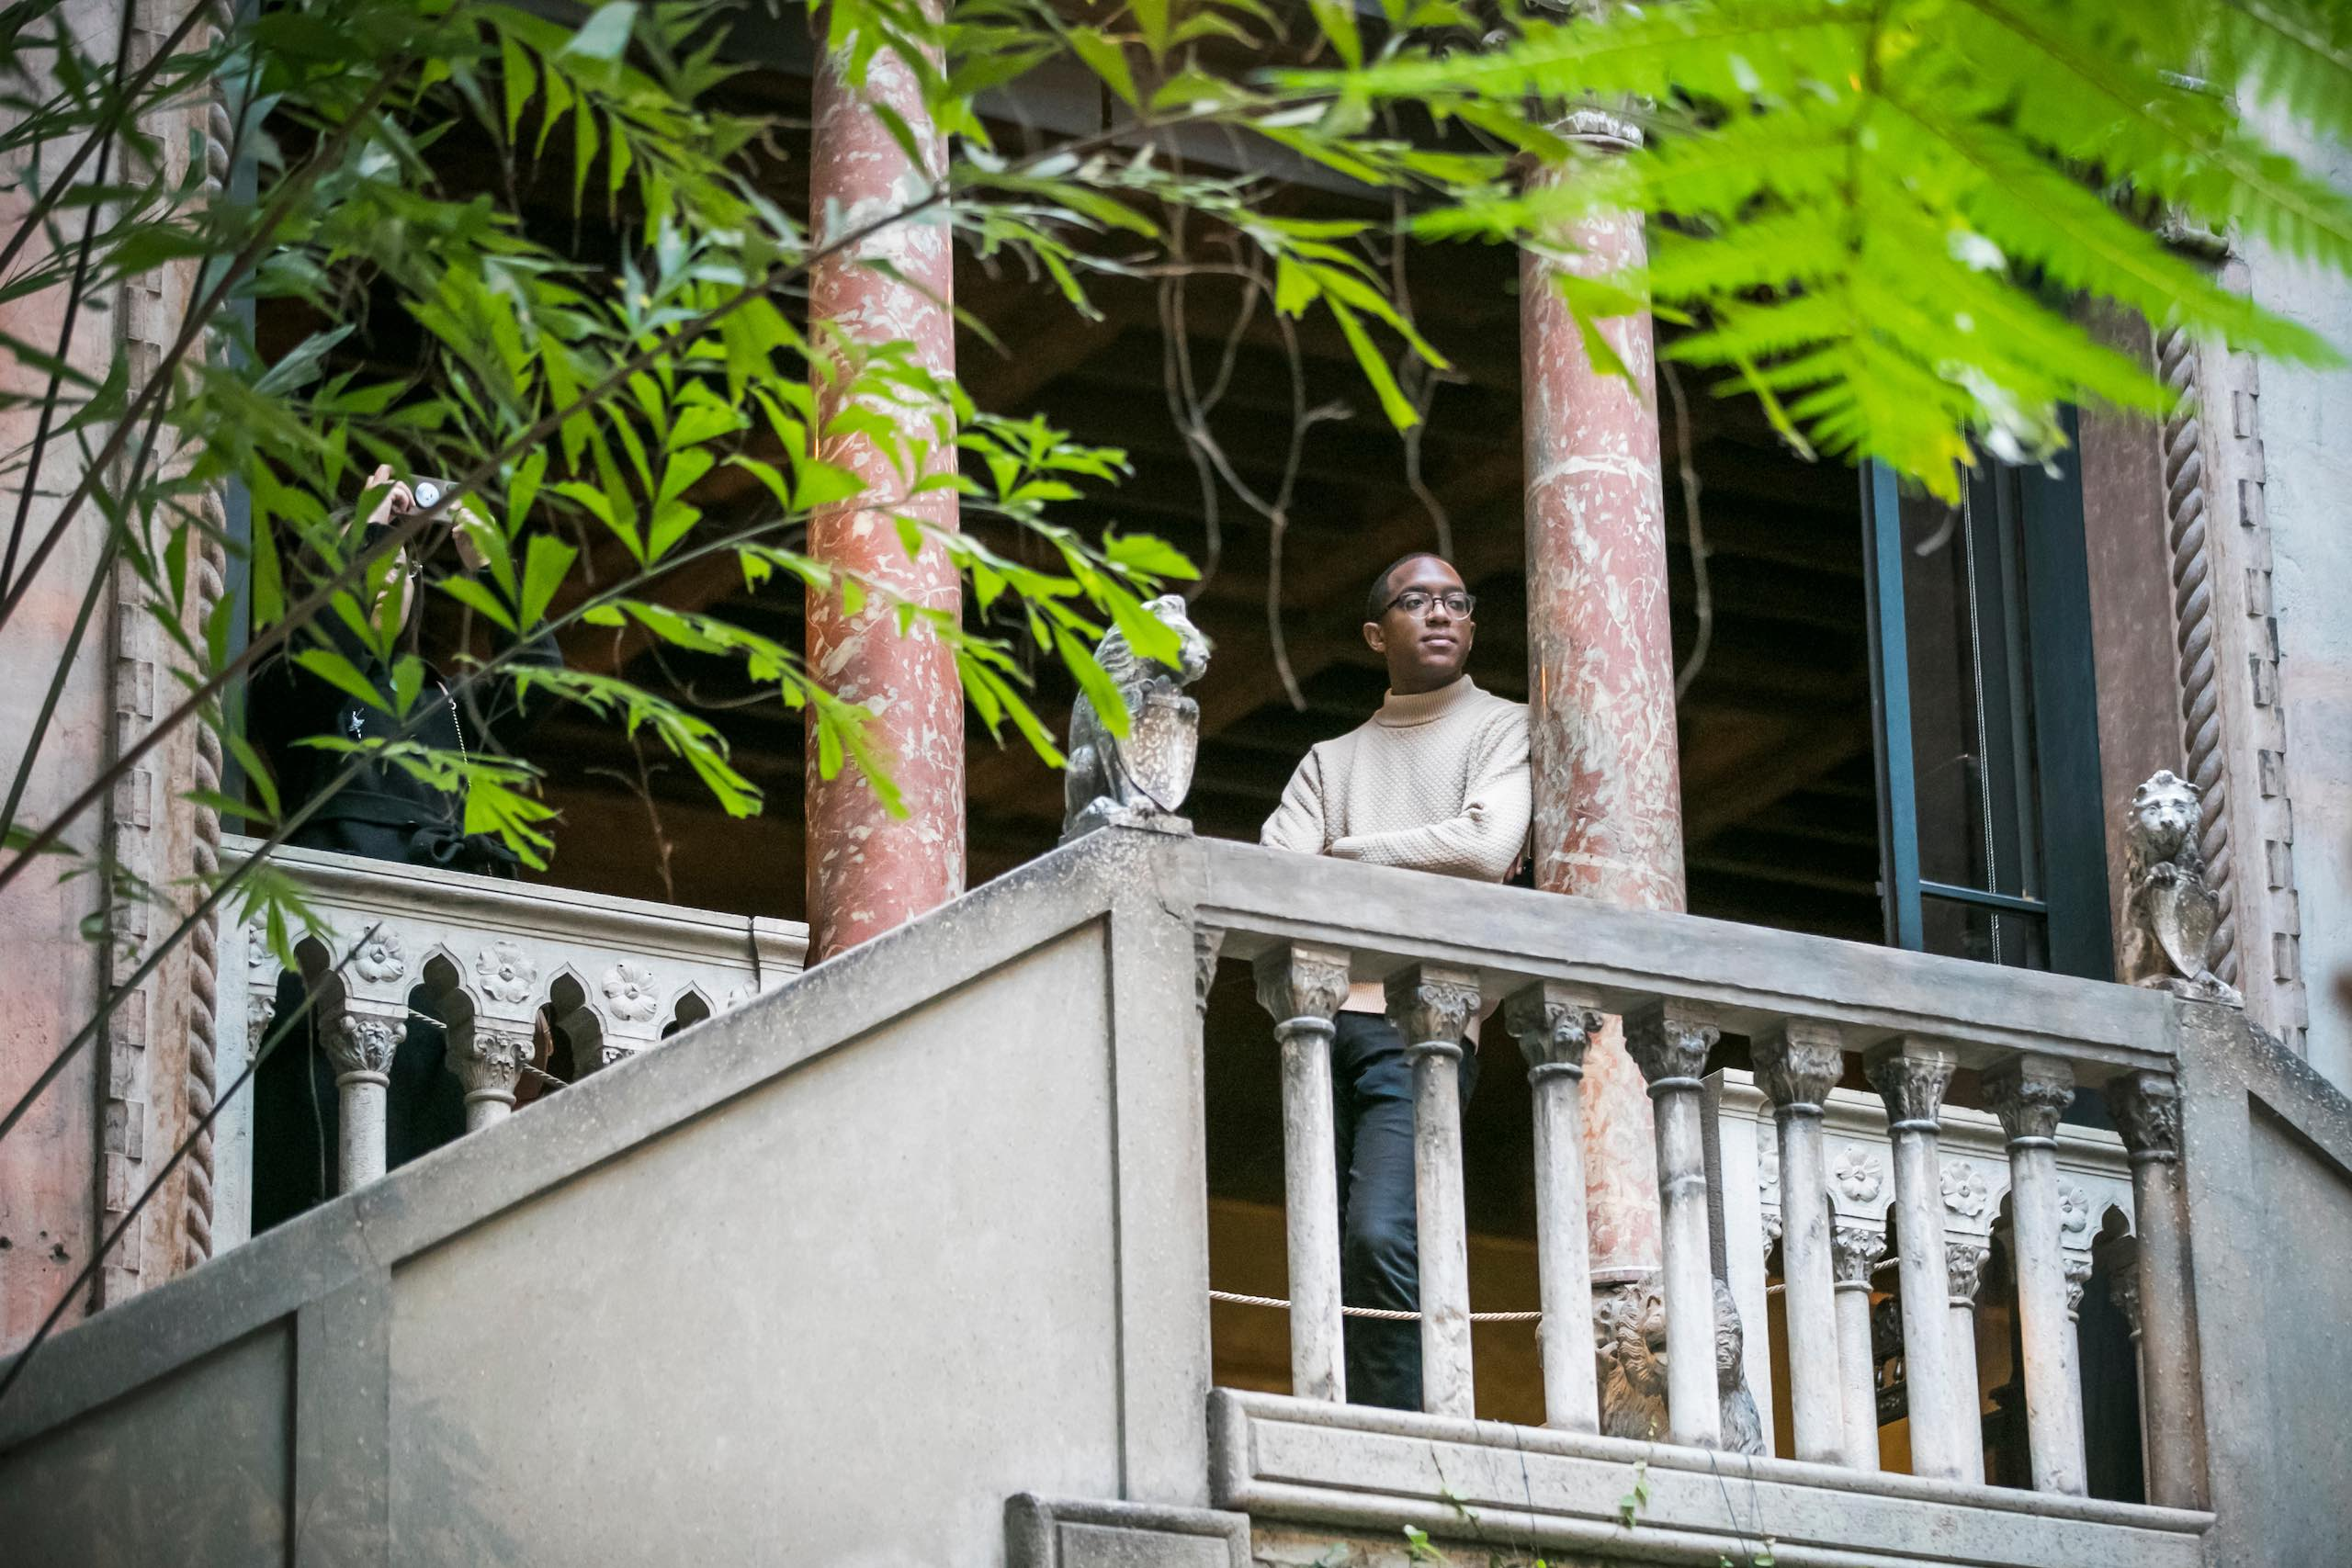 a man leaning out on a balcony